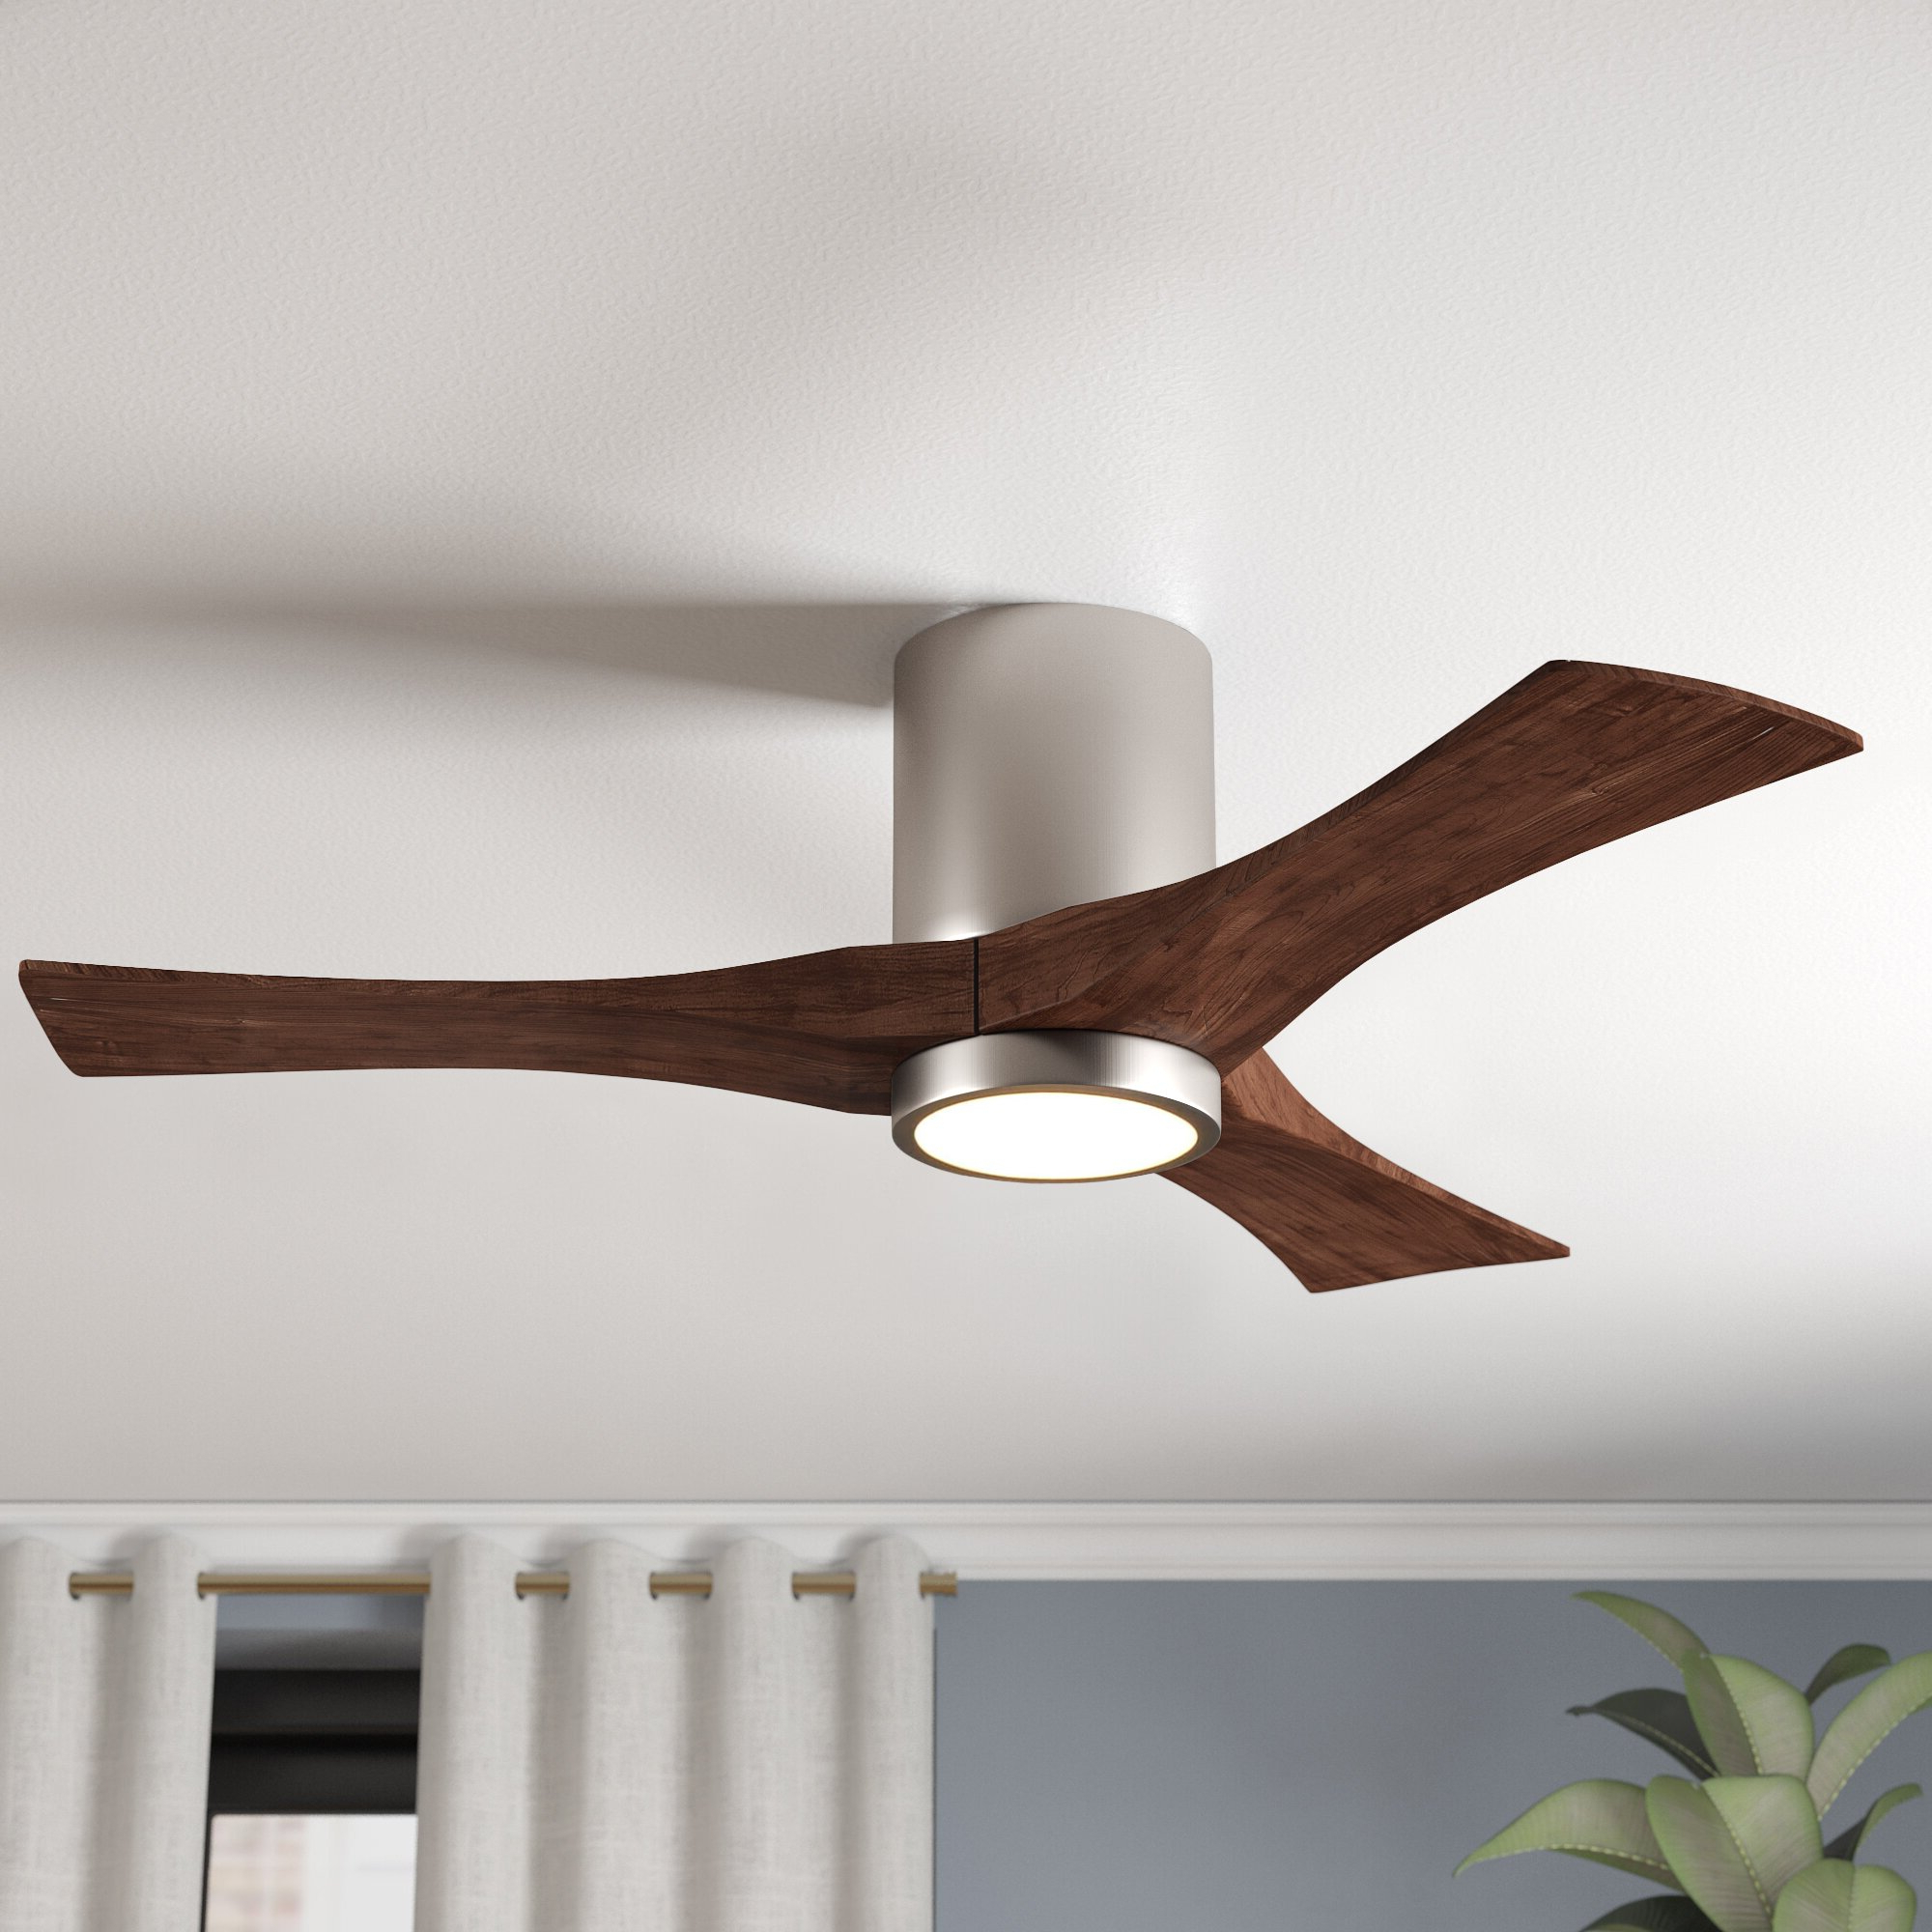 "Latest Hedin 3 Blade Hugger Ceiling Fans Regarding 52"" Rosalind 3 Blade Hugger Ceiling Fan With Wall Remote And Light Kit (View 7 of 20)"